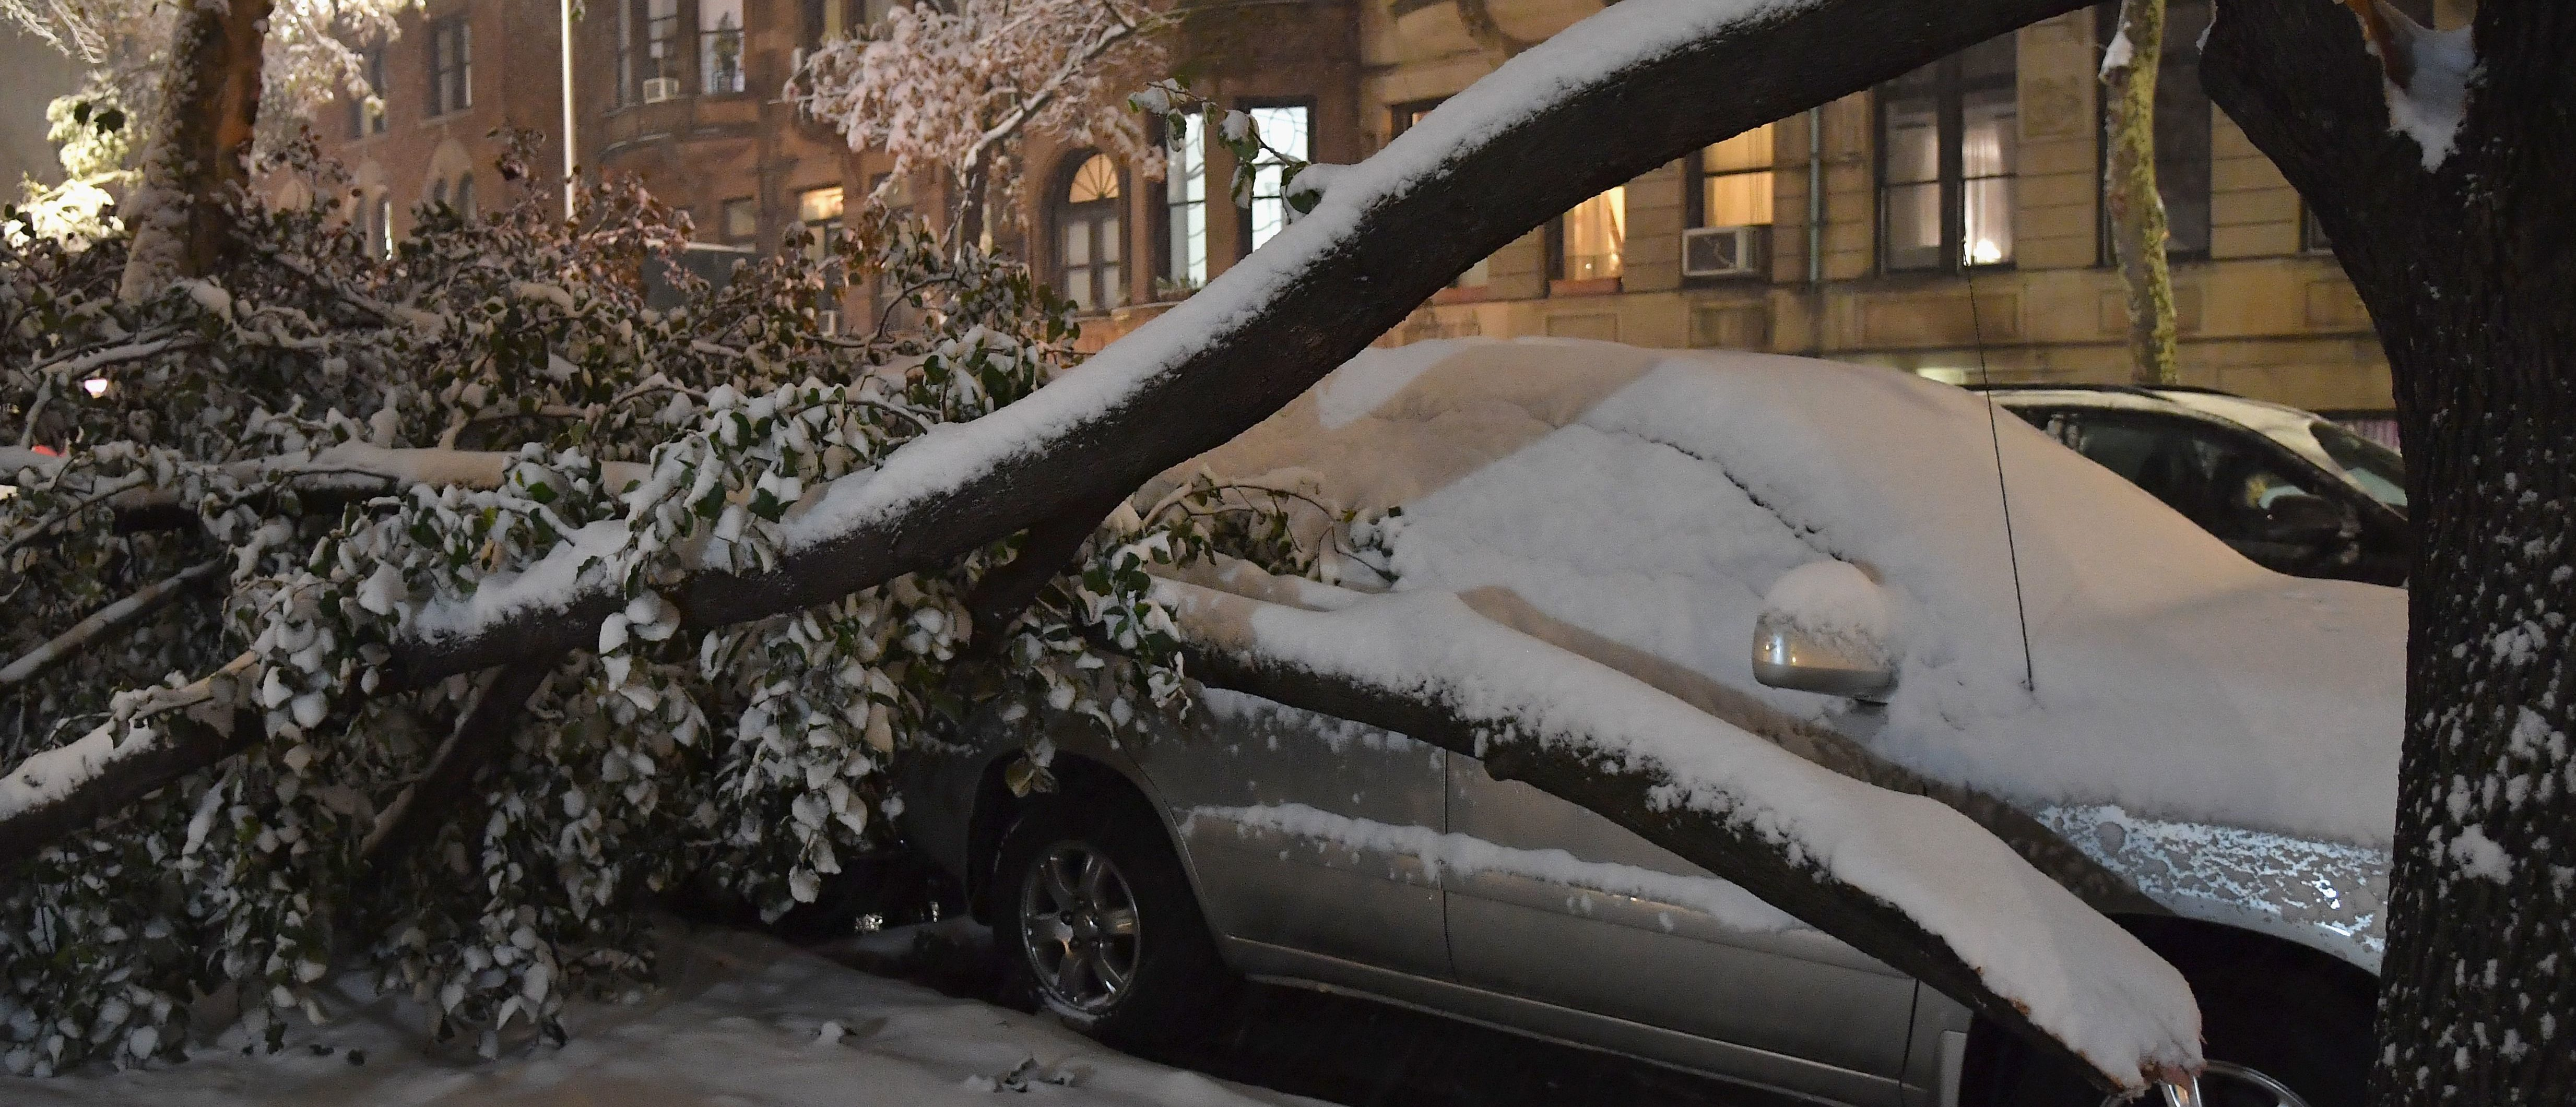 A tree collapsed on top of a parked car in Manhattan on November 15, 2018 in New York. - The National Weather Service is predicting snowfall totals of 2 to 4 inches in New York City. (Photo by Angela Weiss / AFP) (Photo credit should read ANGELA WEISS/AFP/Getty Images)